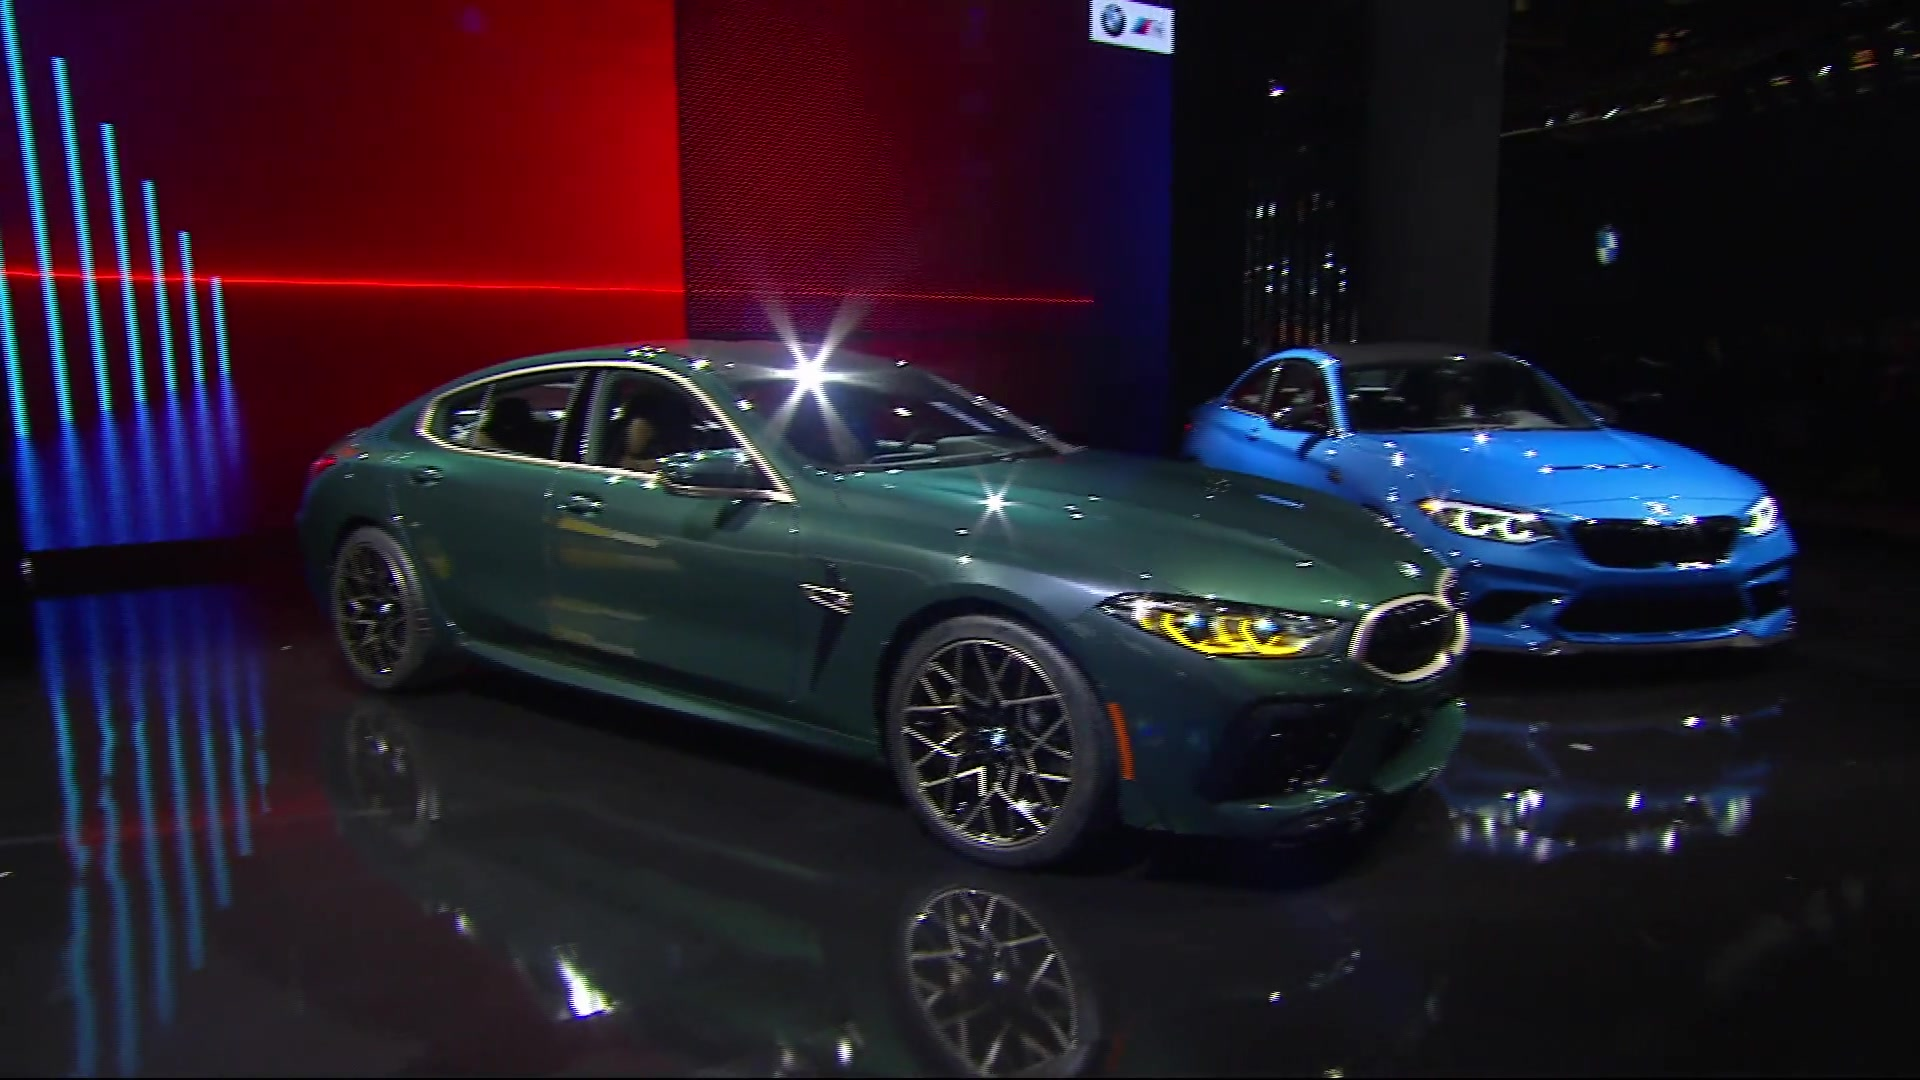 World Premiere of the new BMW M2 CS Racing at LA Auto Show 2019